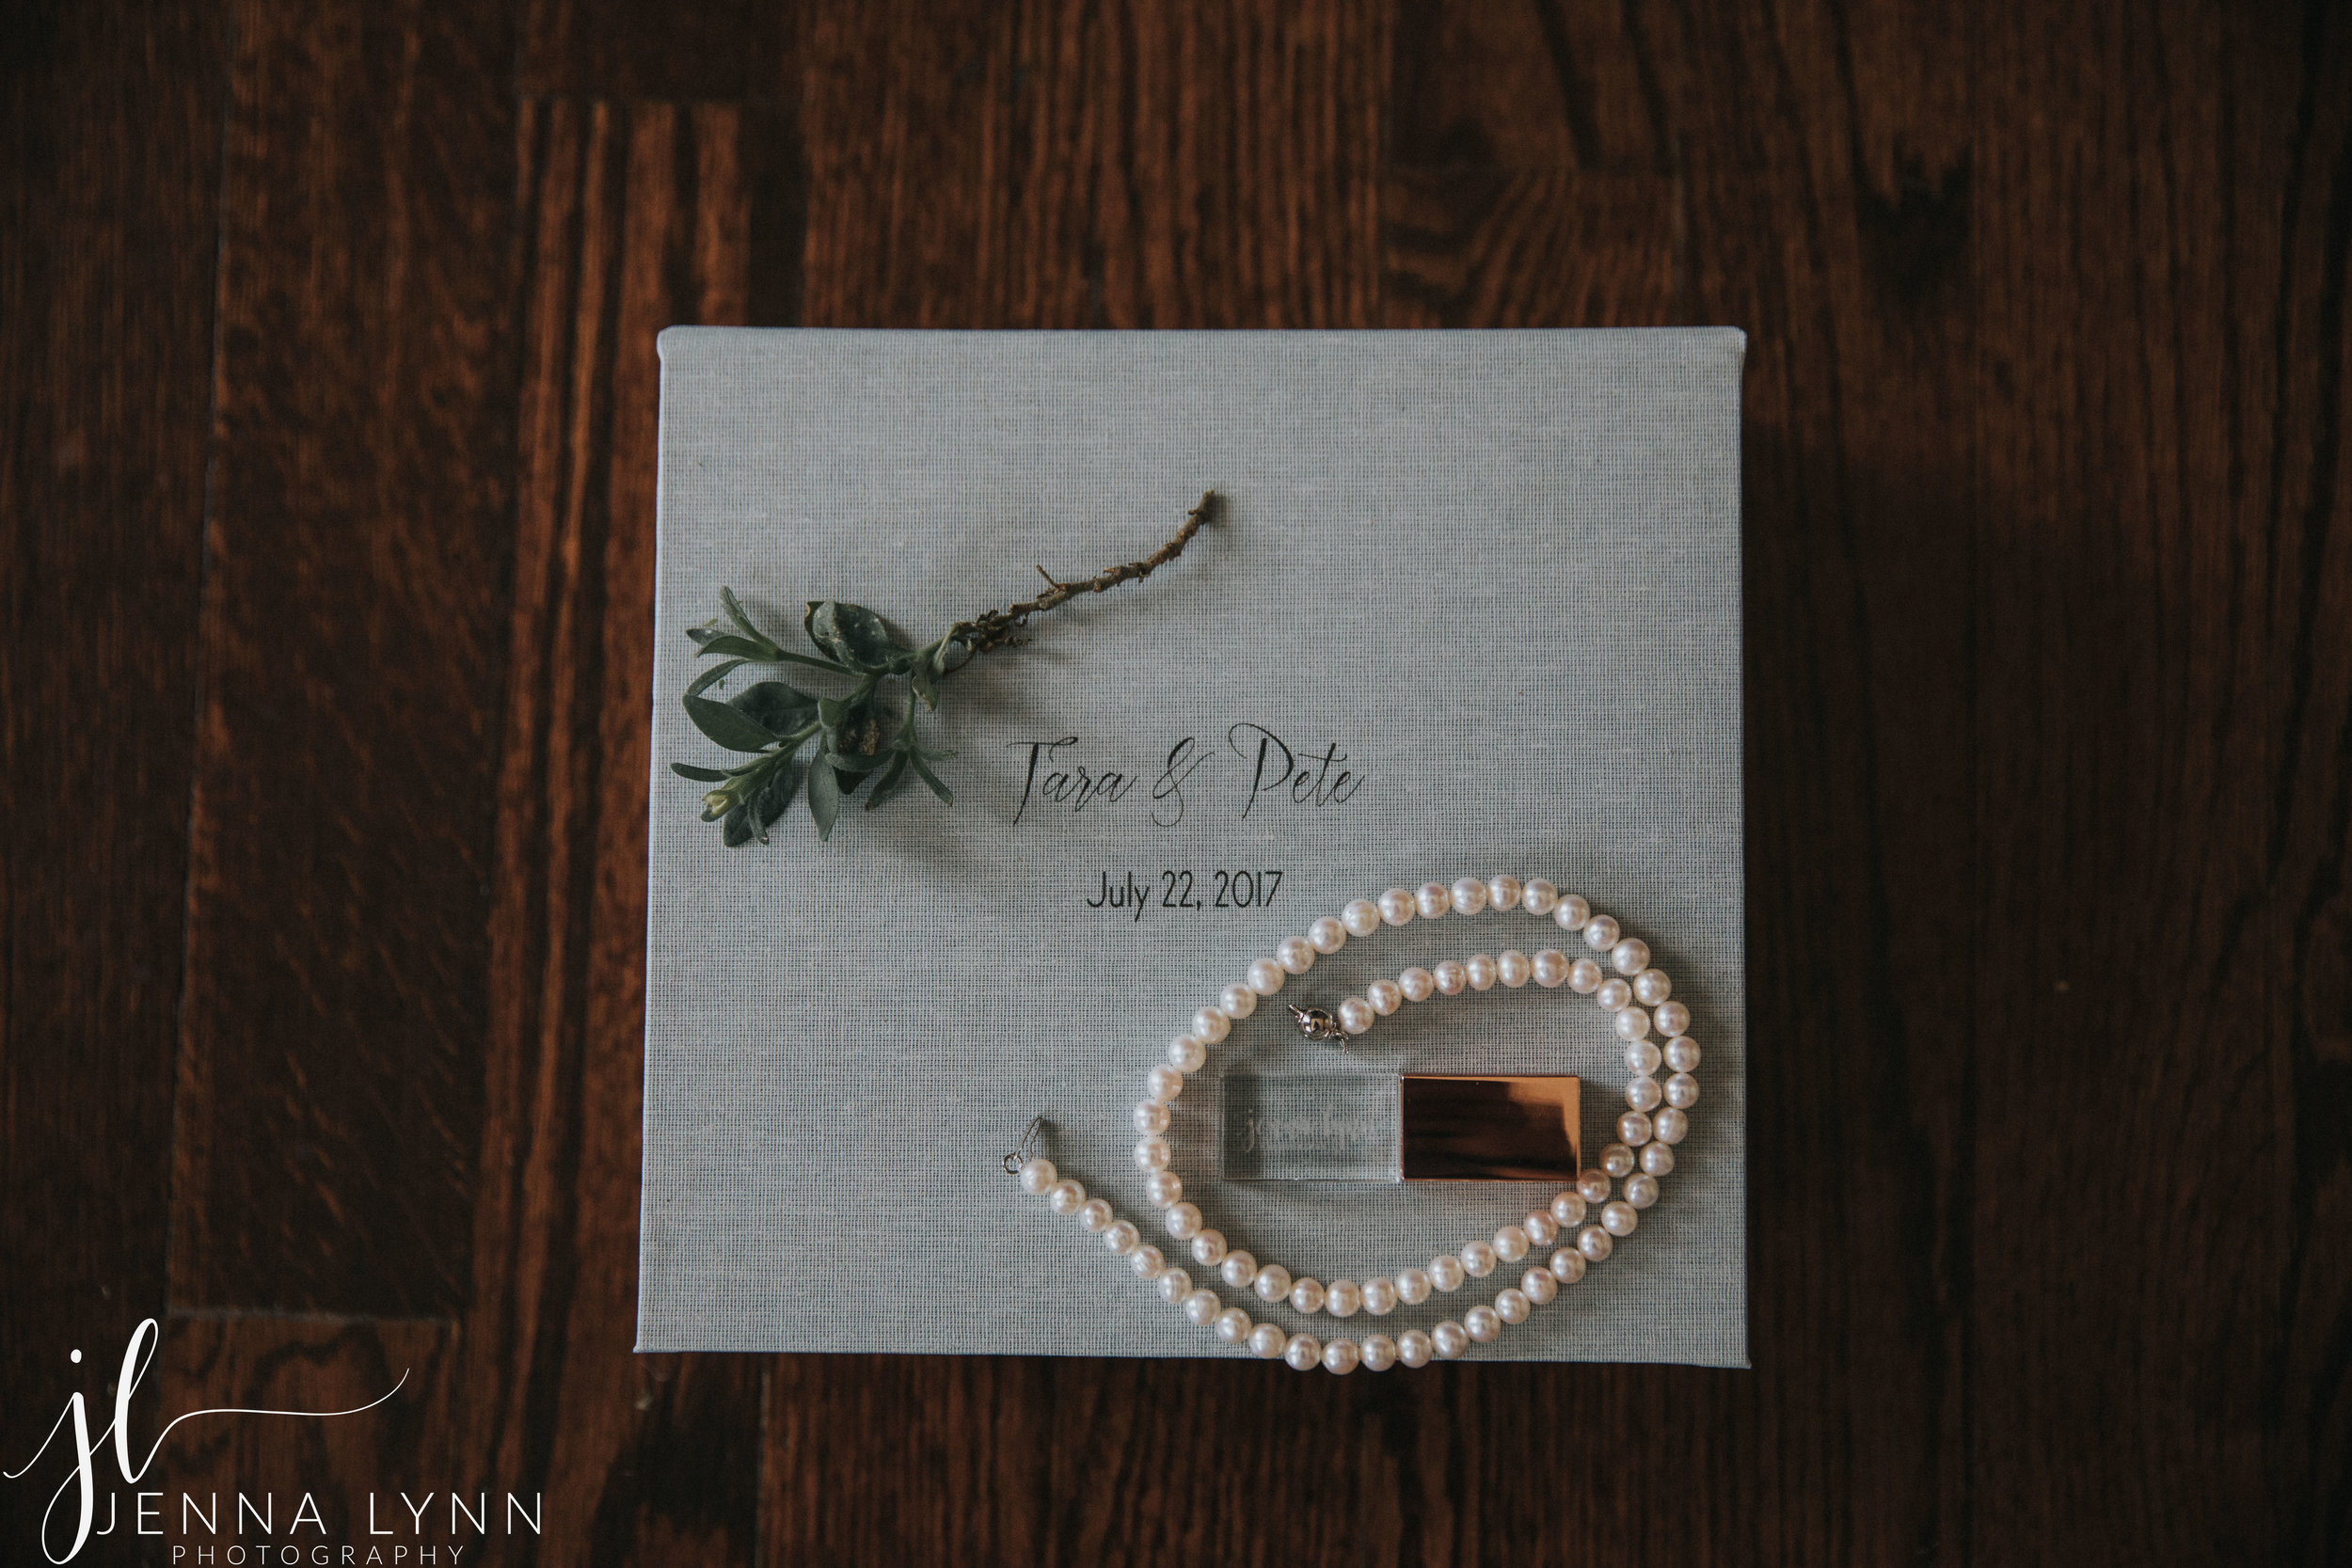 NewJersey_Wedding_Photography_Products-6.jpg